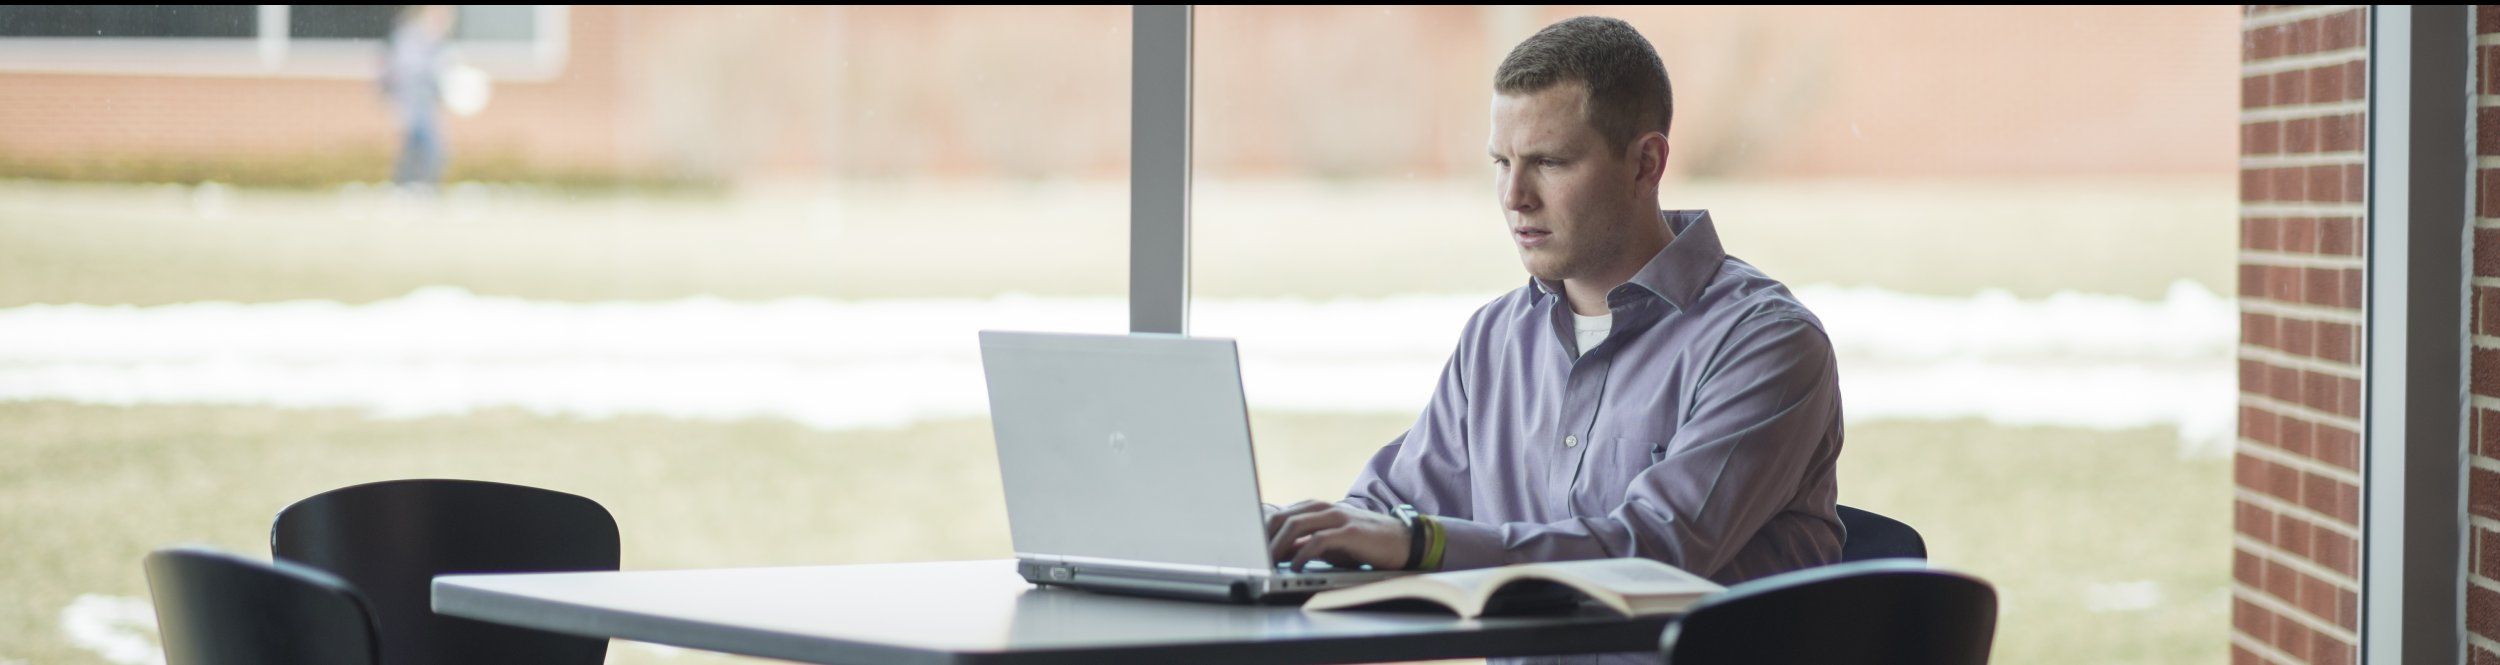 A male student types on his laptop.